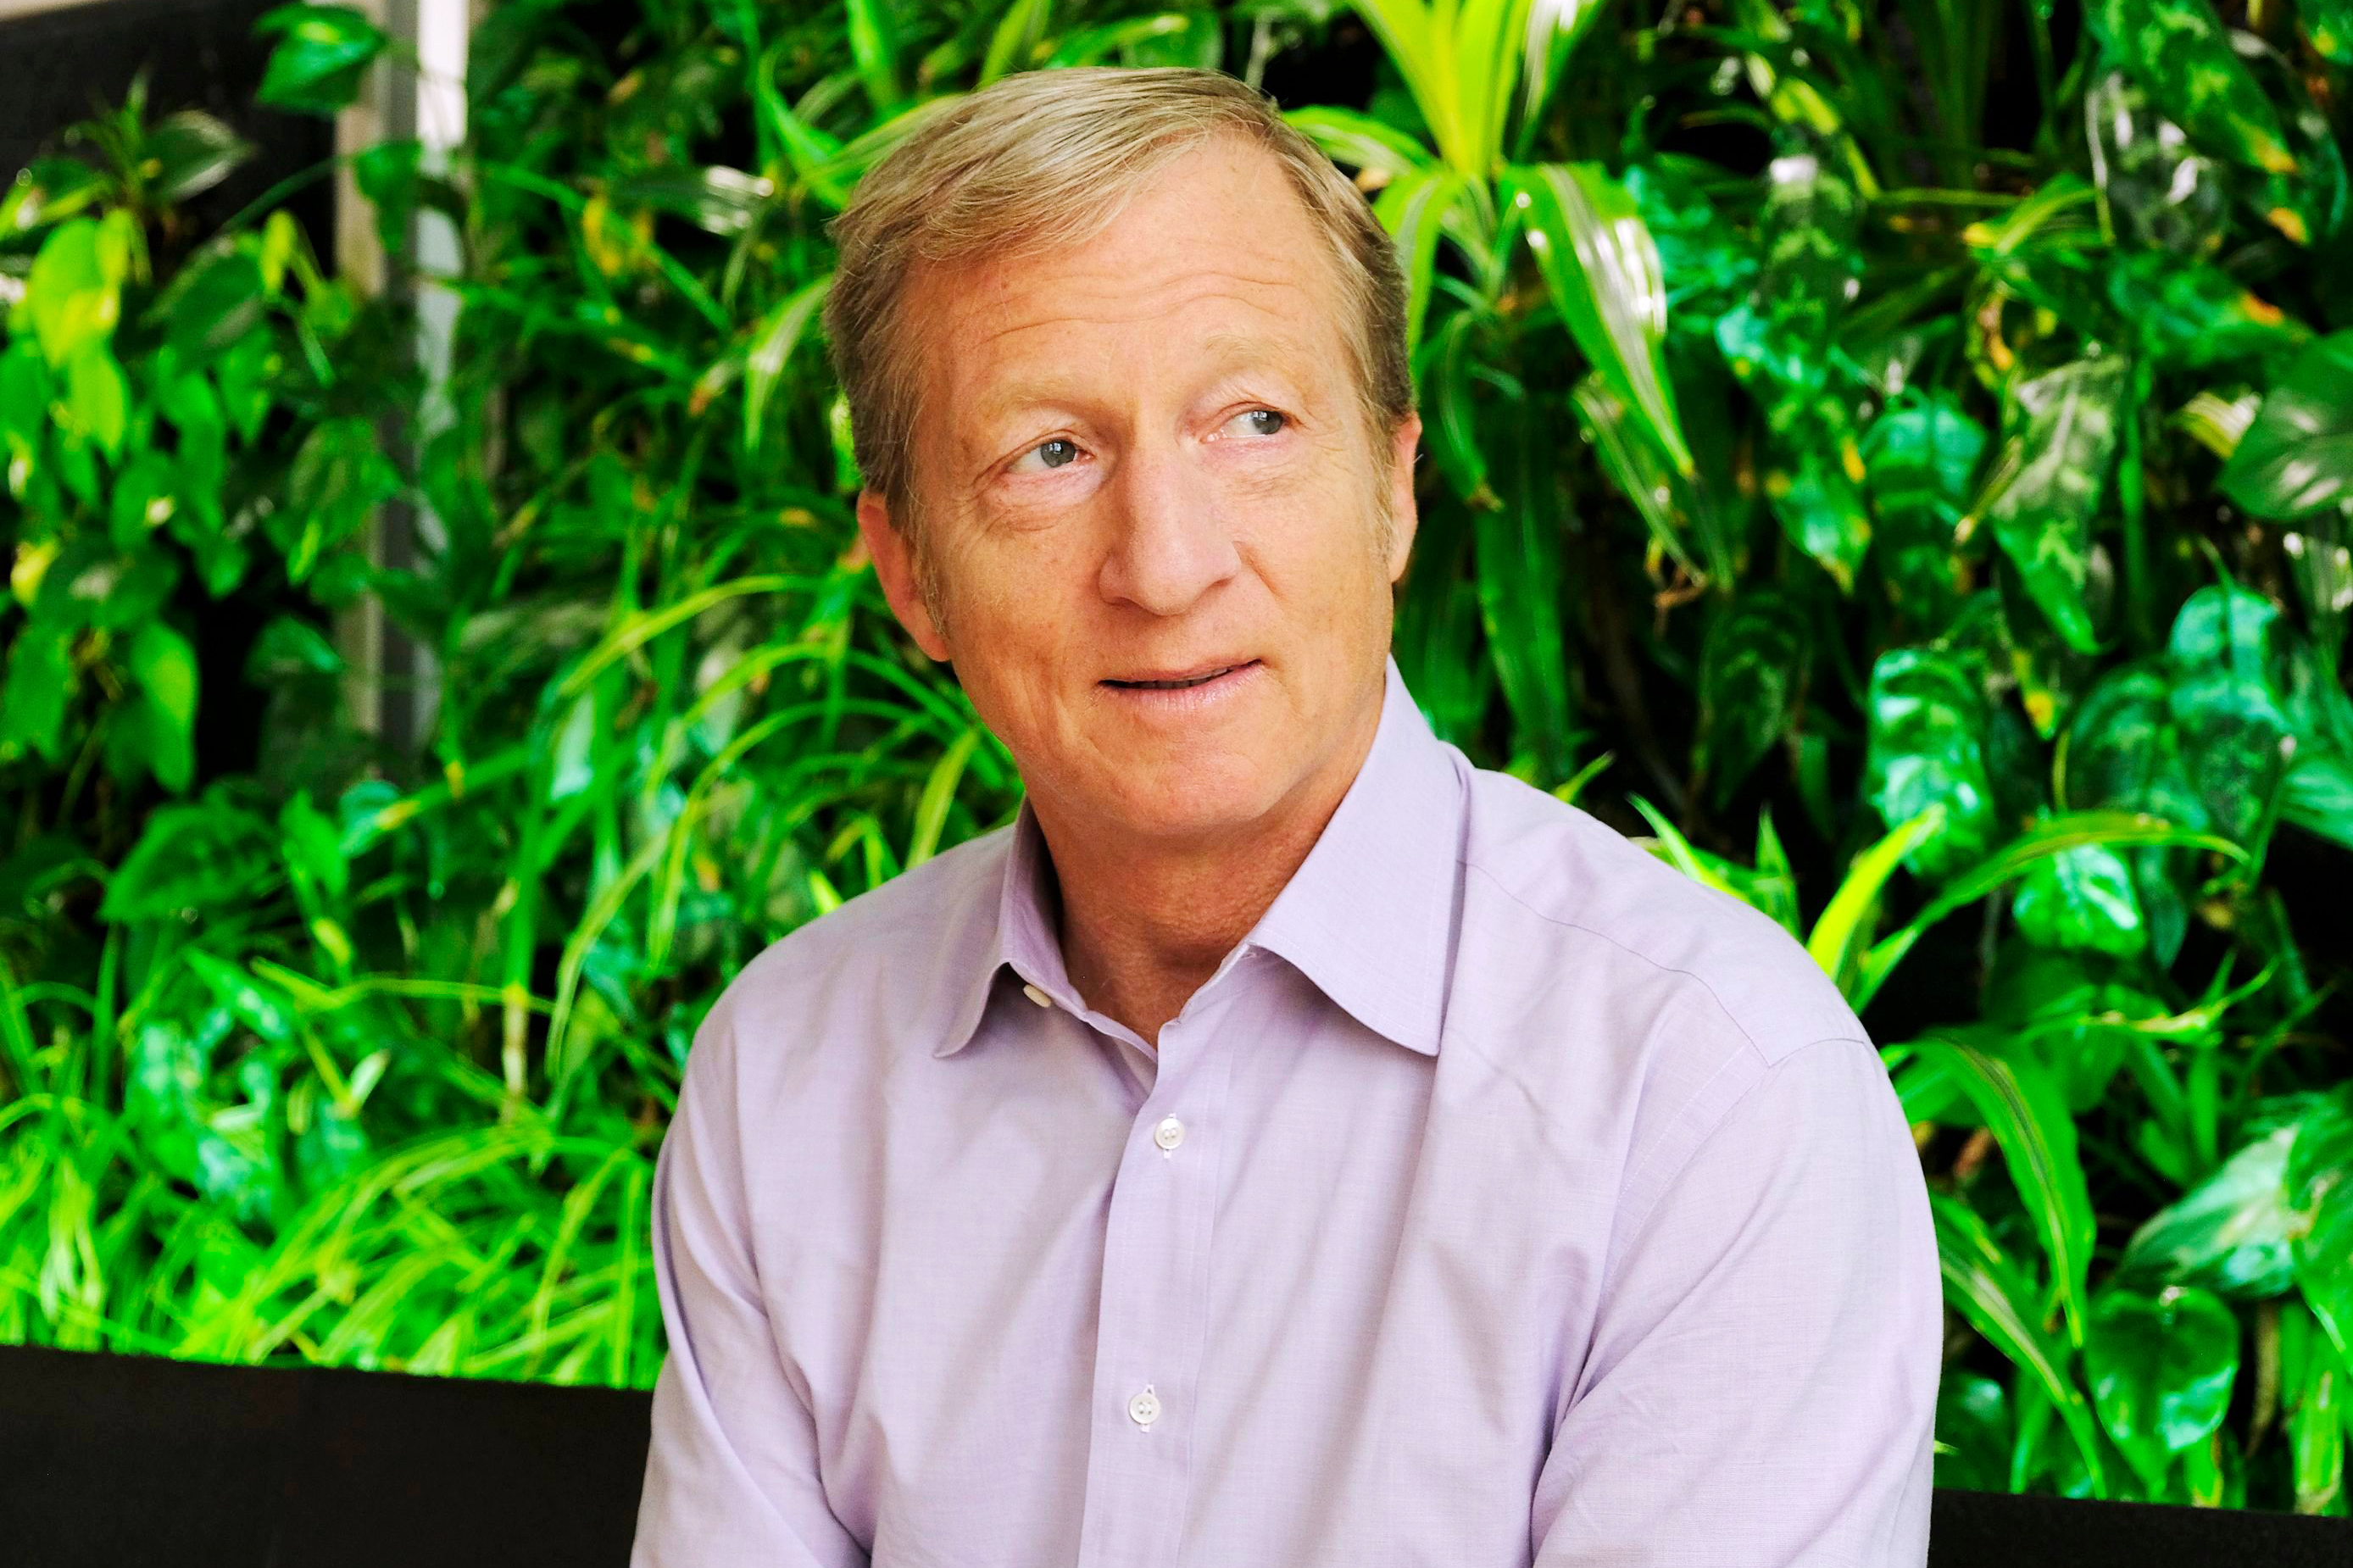 Liberal Billionaire Tom Steyer Appears to Want Your 2020 Vote